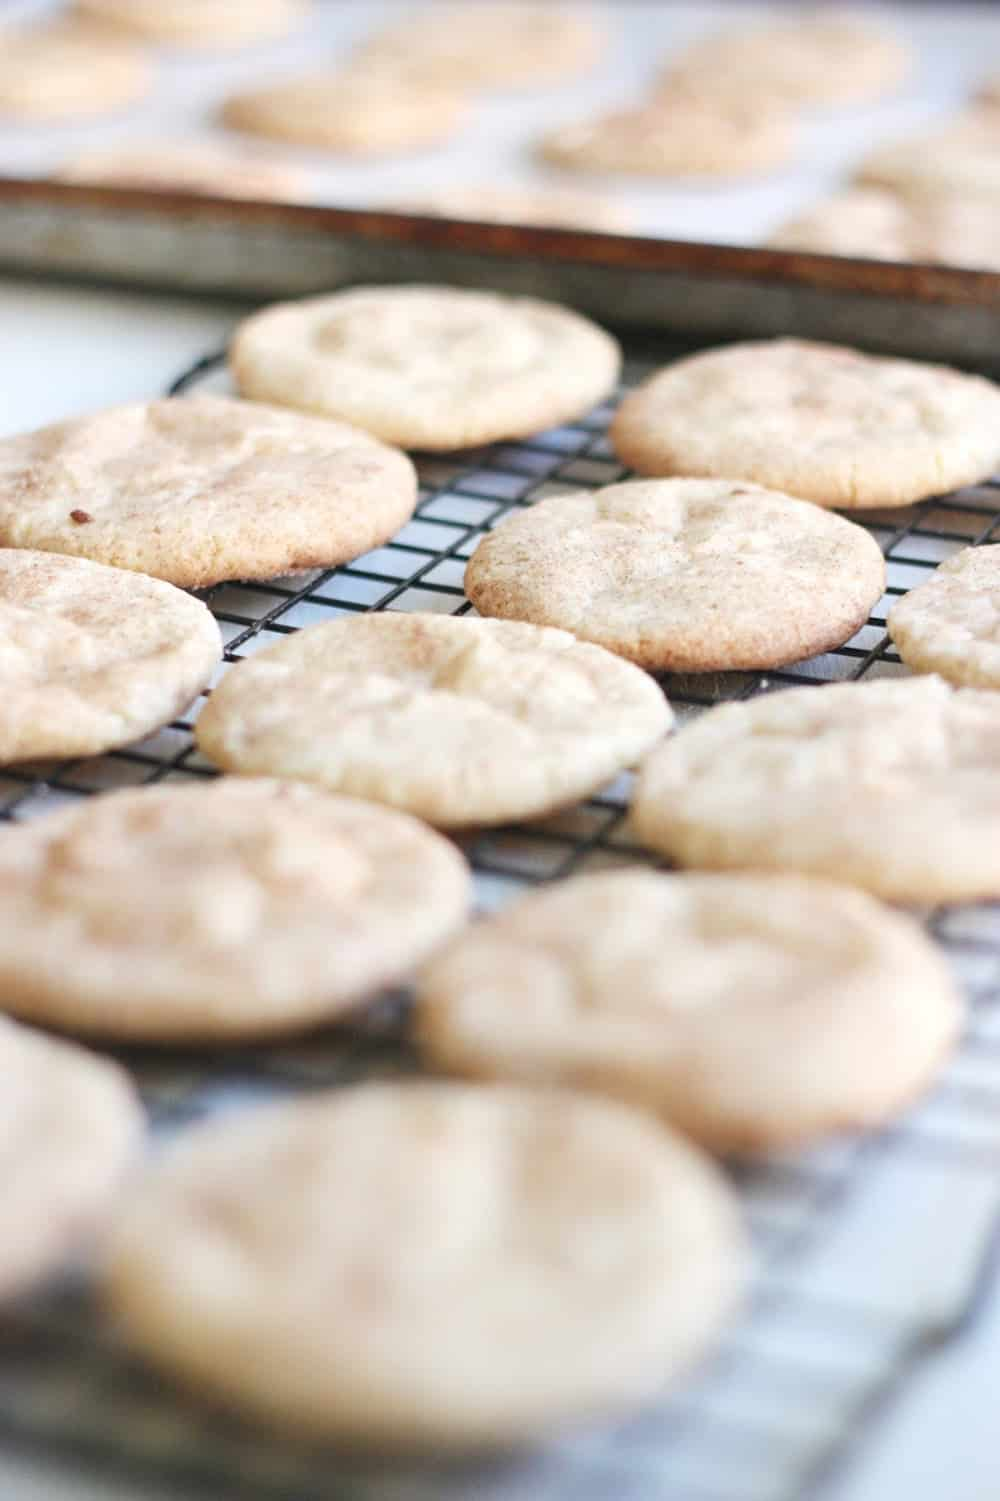 Snickerdoodles are a holiday staple! Here's a way you can take the classic recipe to the next level by adding a little white chocolate and toffee.